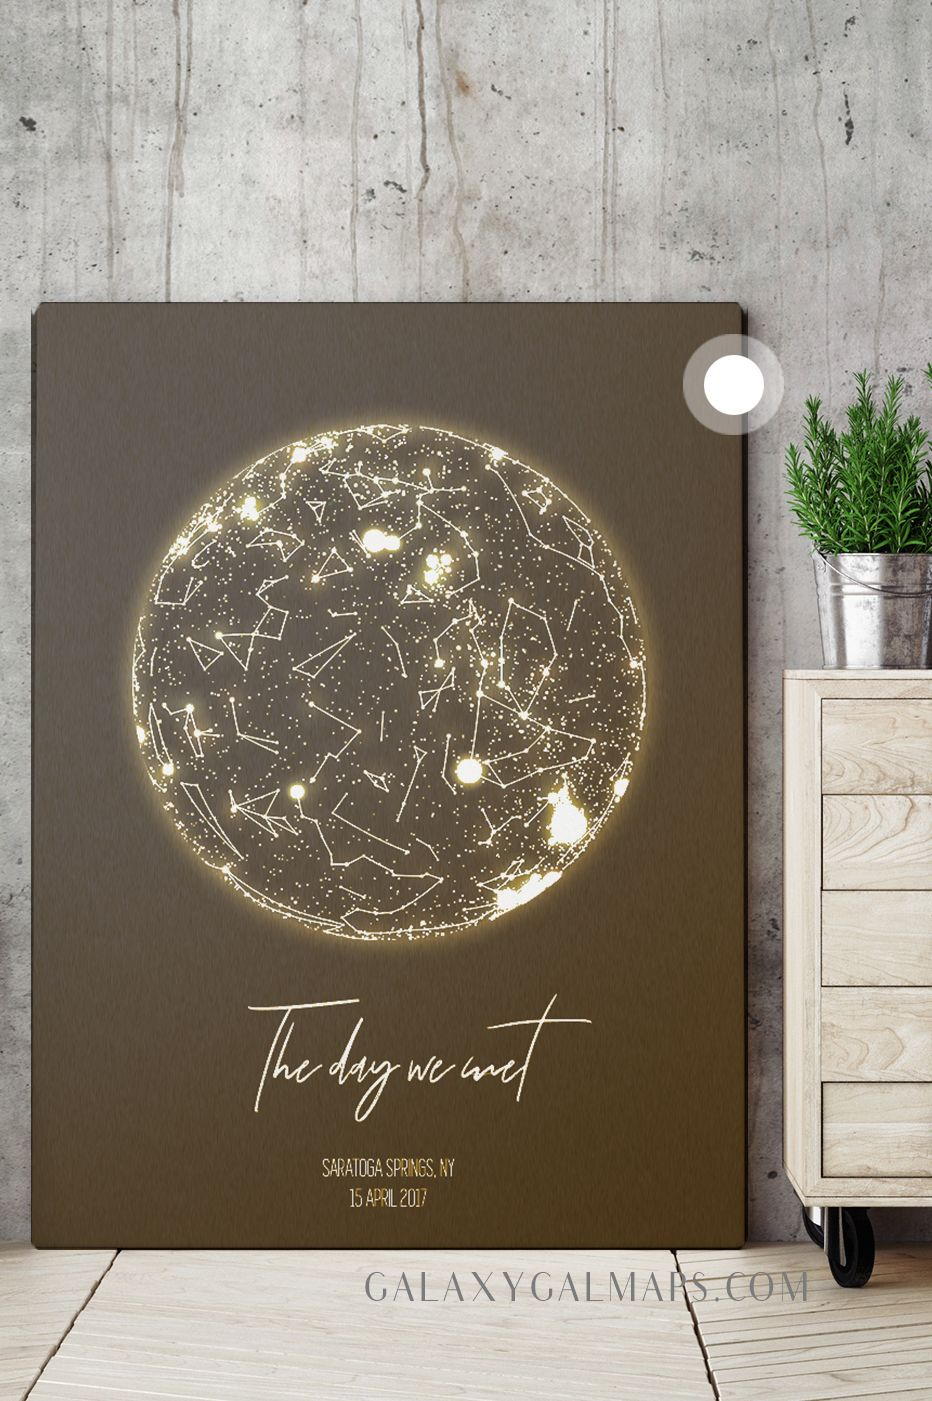 Star Map By Date And Location.Star Chart By Date And Location Perseus Constellation Map